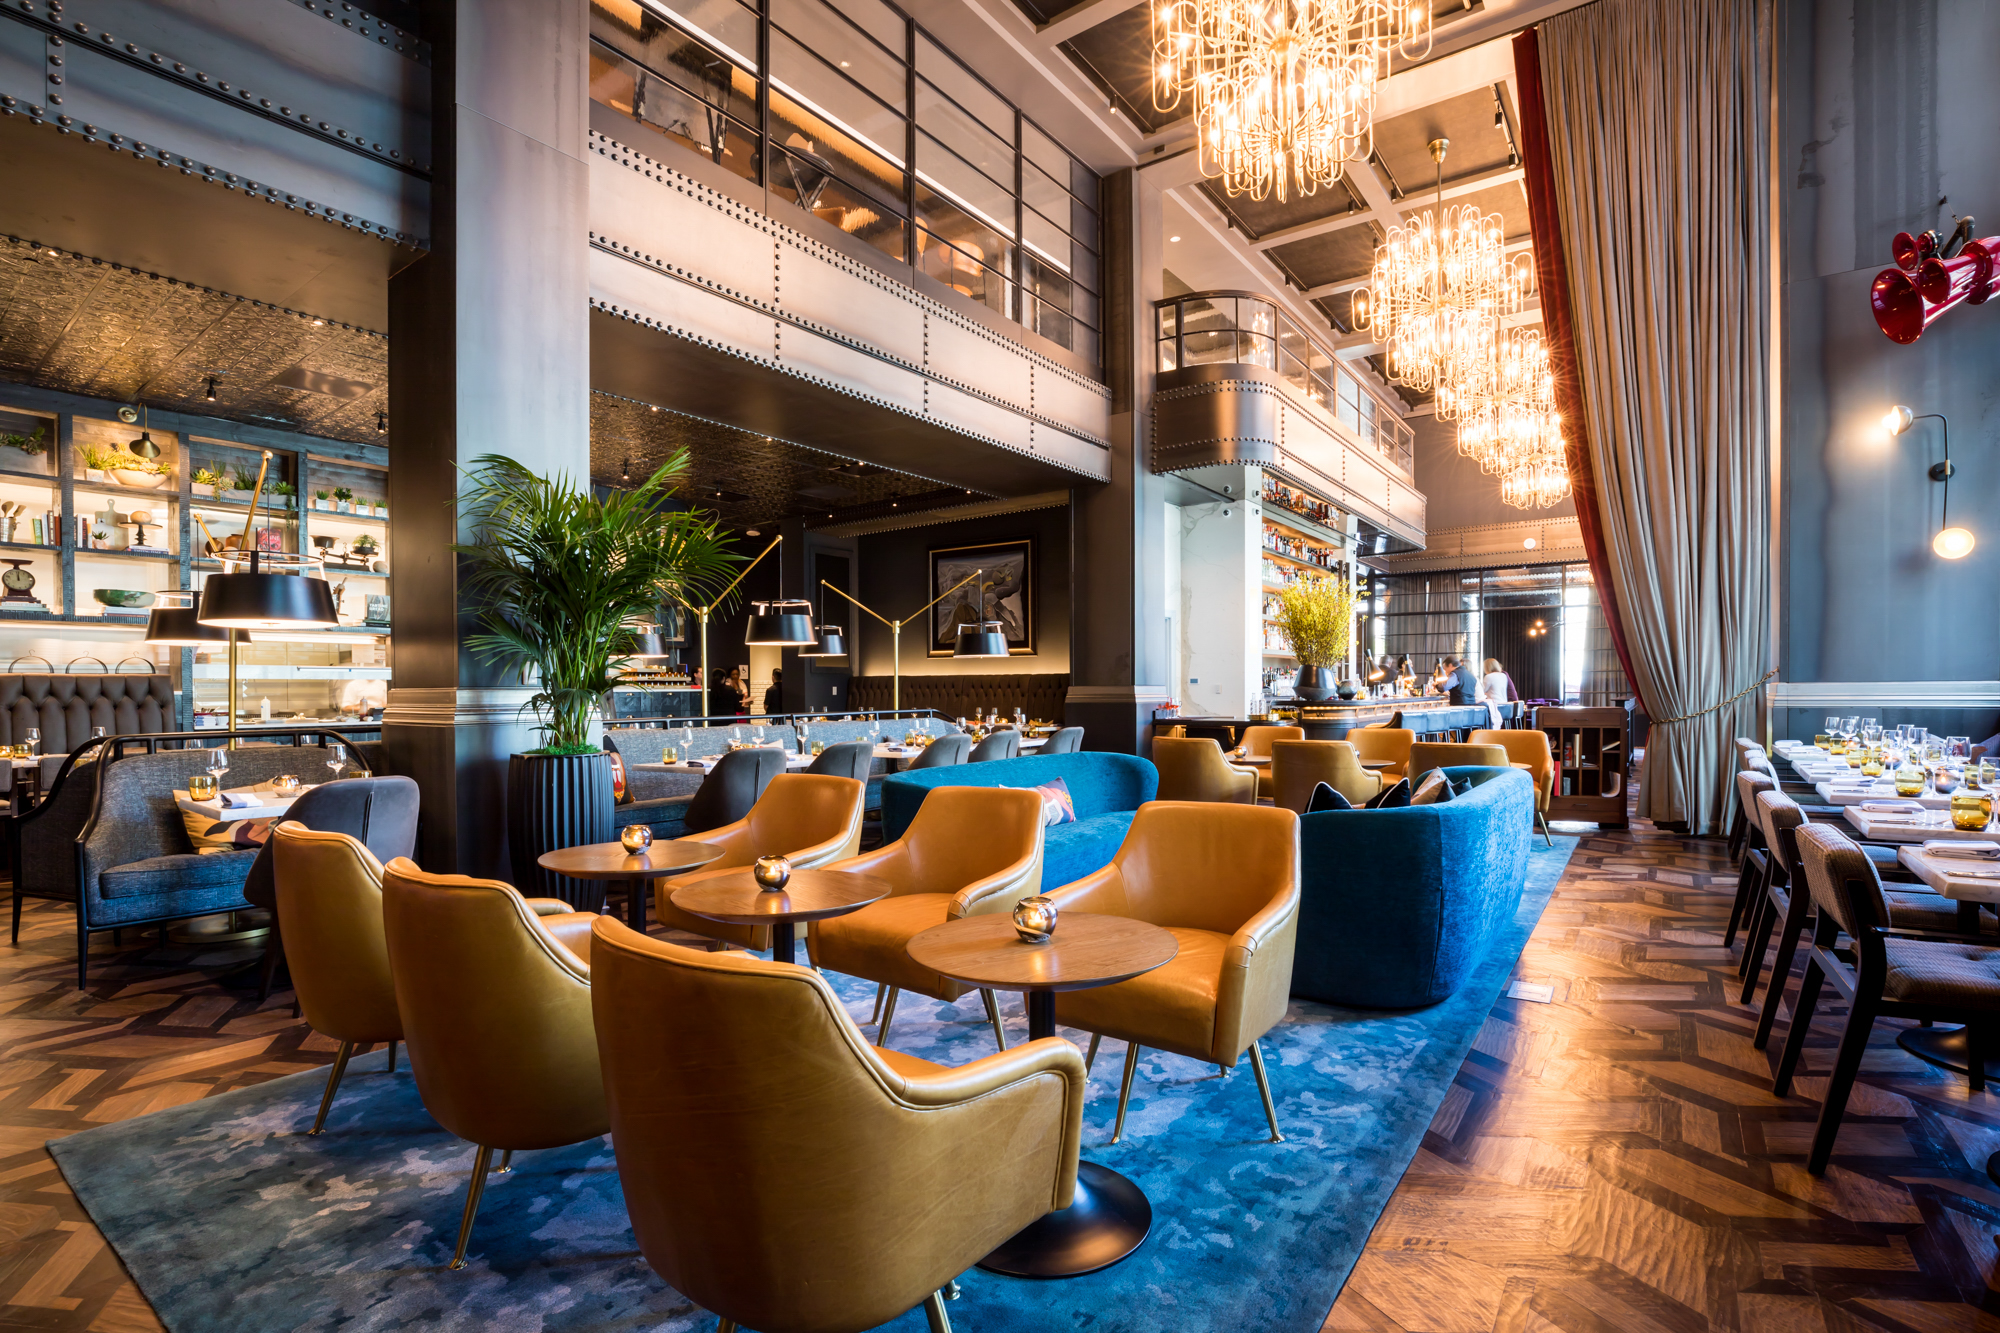 A Ritzy New Restaurant and Rooftop Bar Will Soon Debut at Dallas's Forthcoming Virgin Hotel